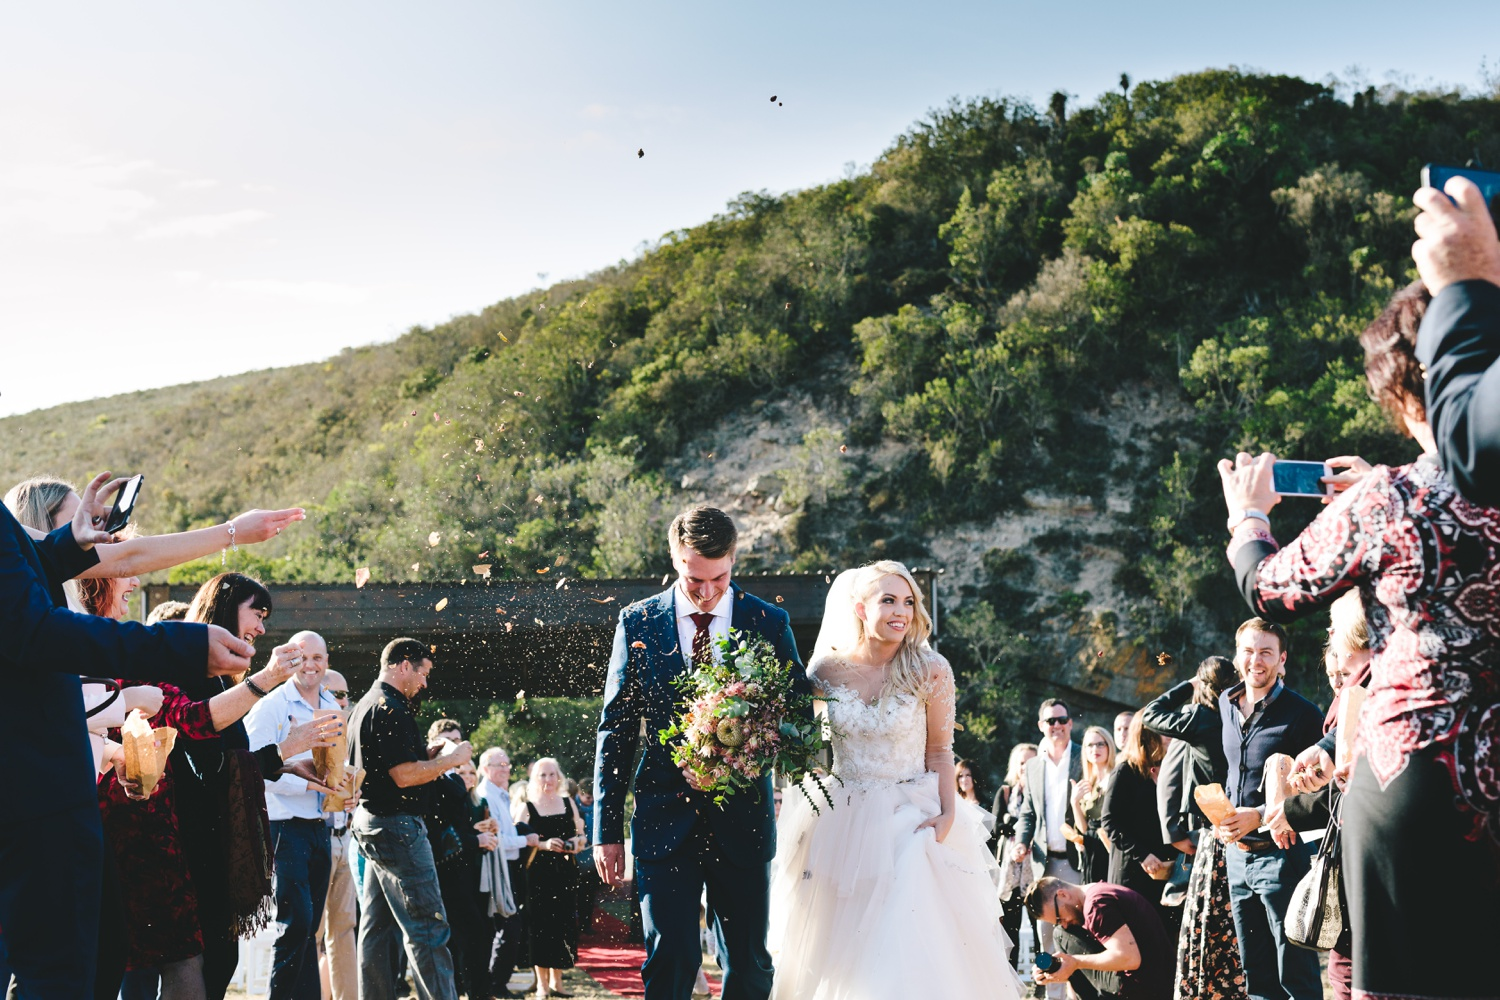 Wastern cape wedding photographer hopewell conservation wildlife